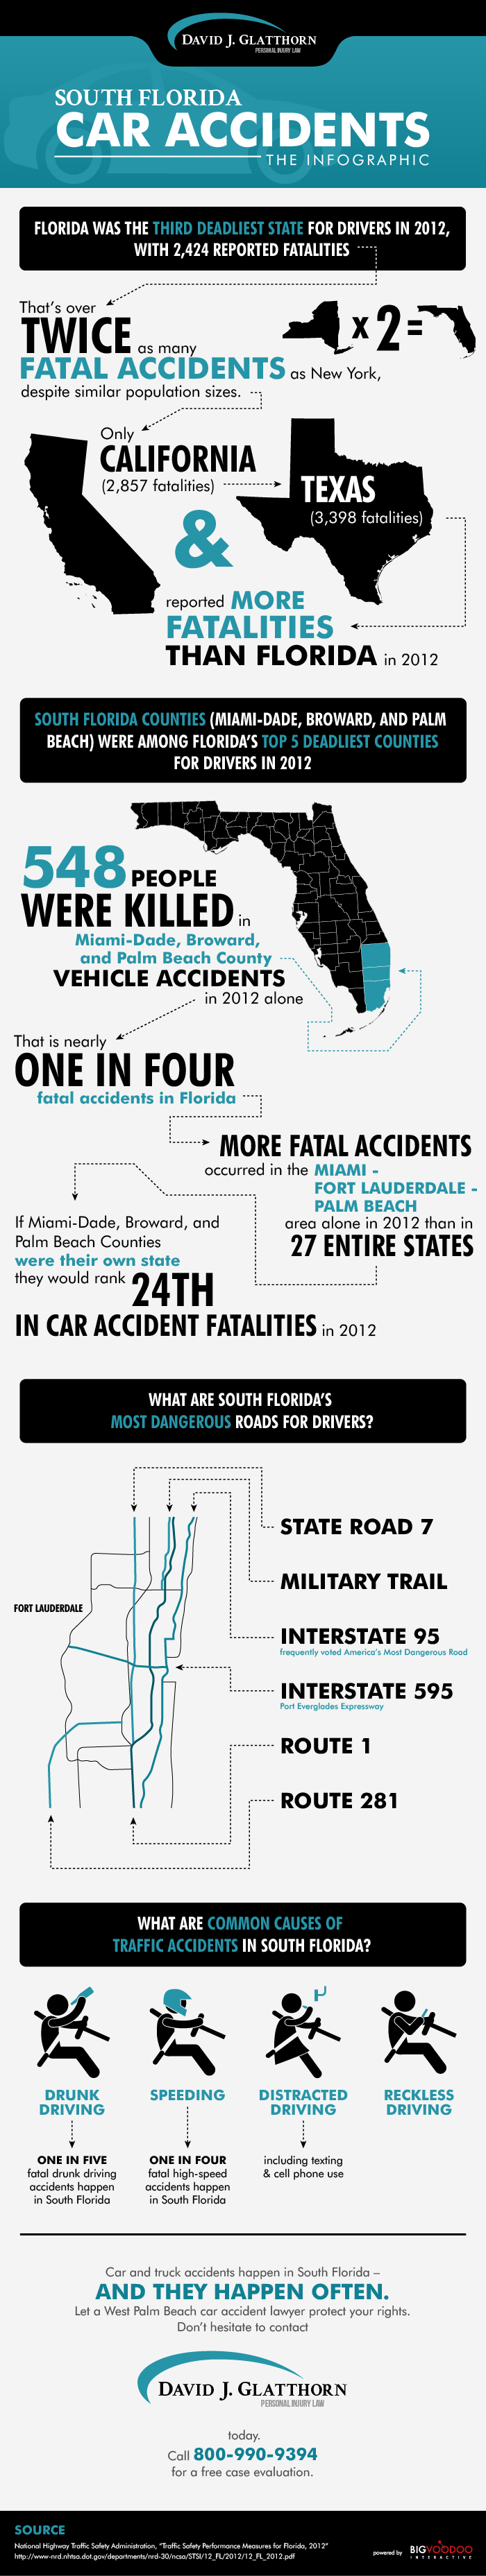 South Florida Car Accident Attorneys Infographic